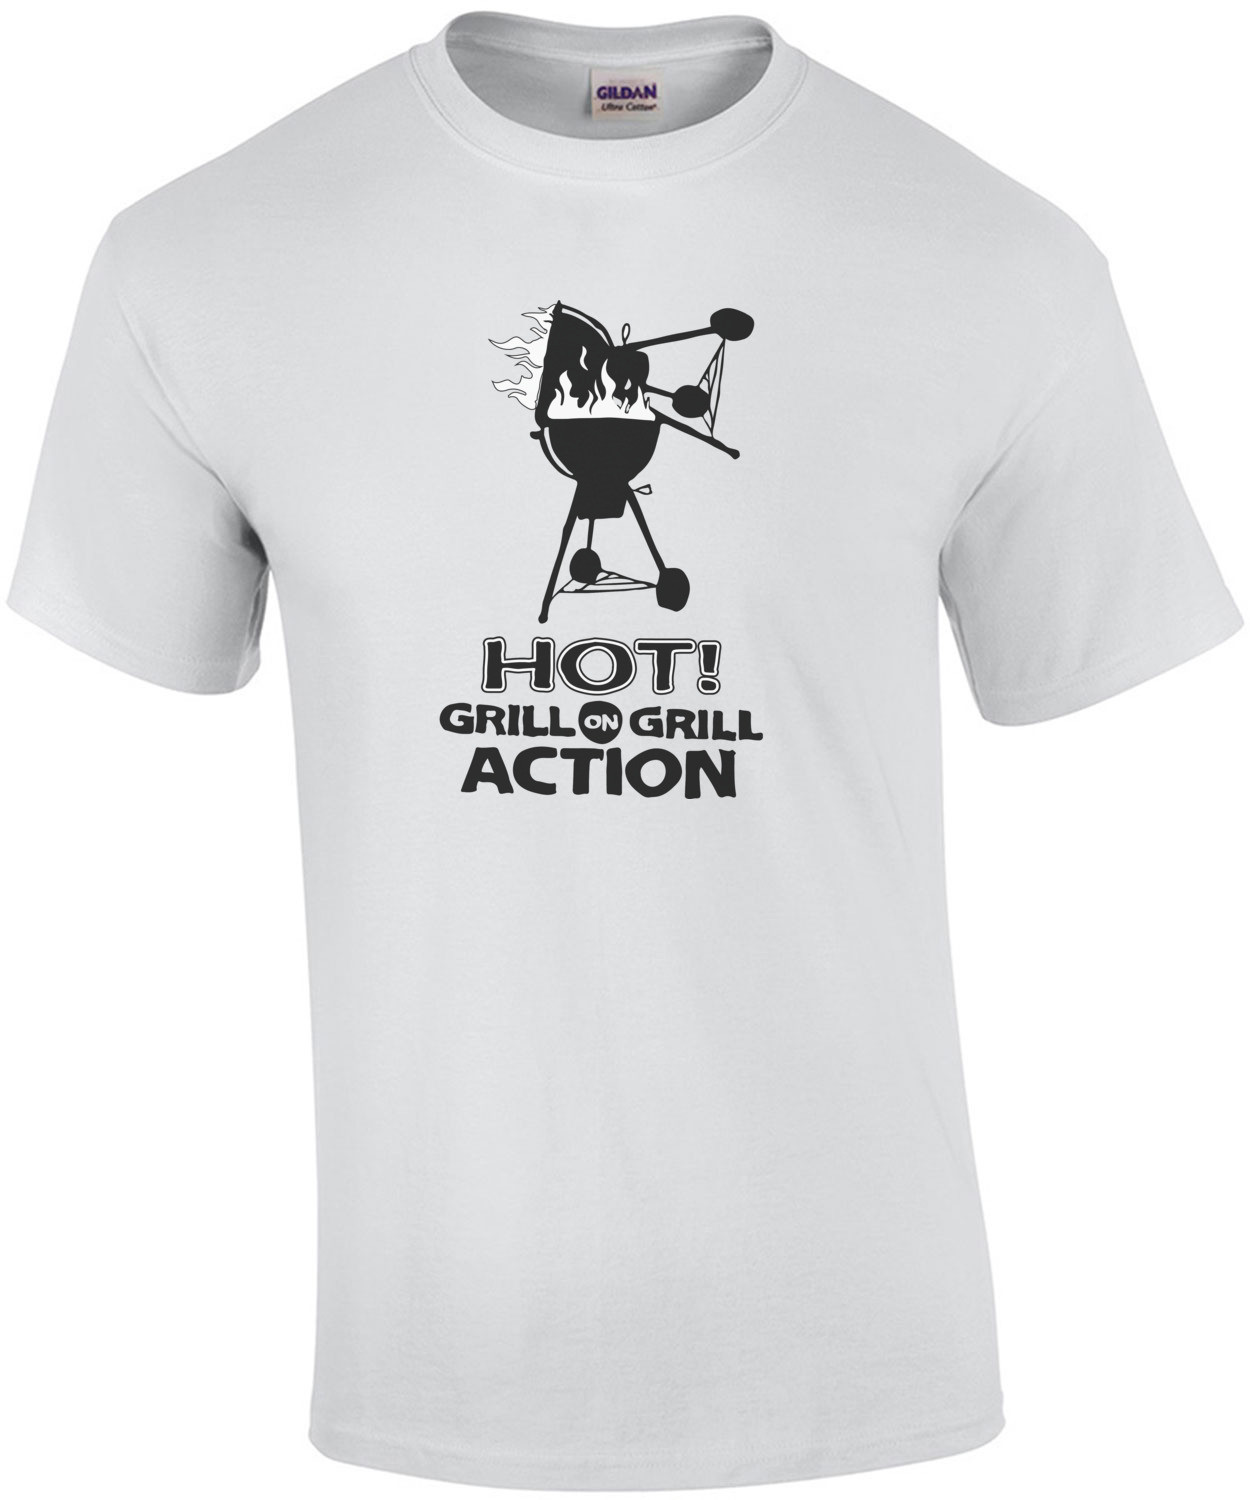 Hot Grill on grill action - t-shirt